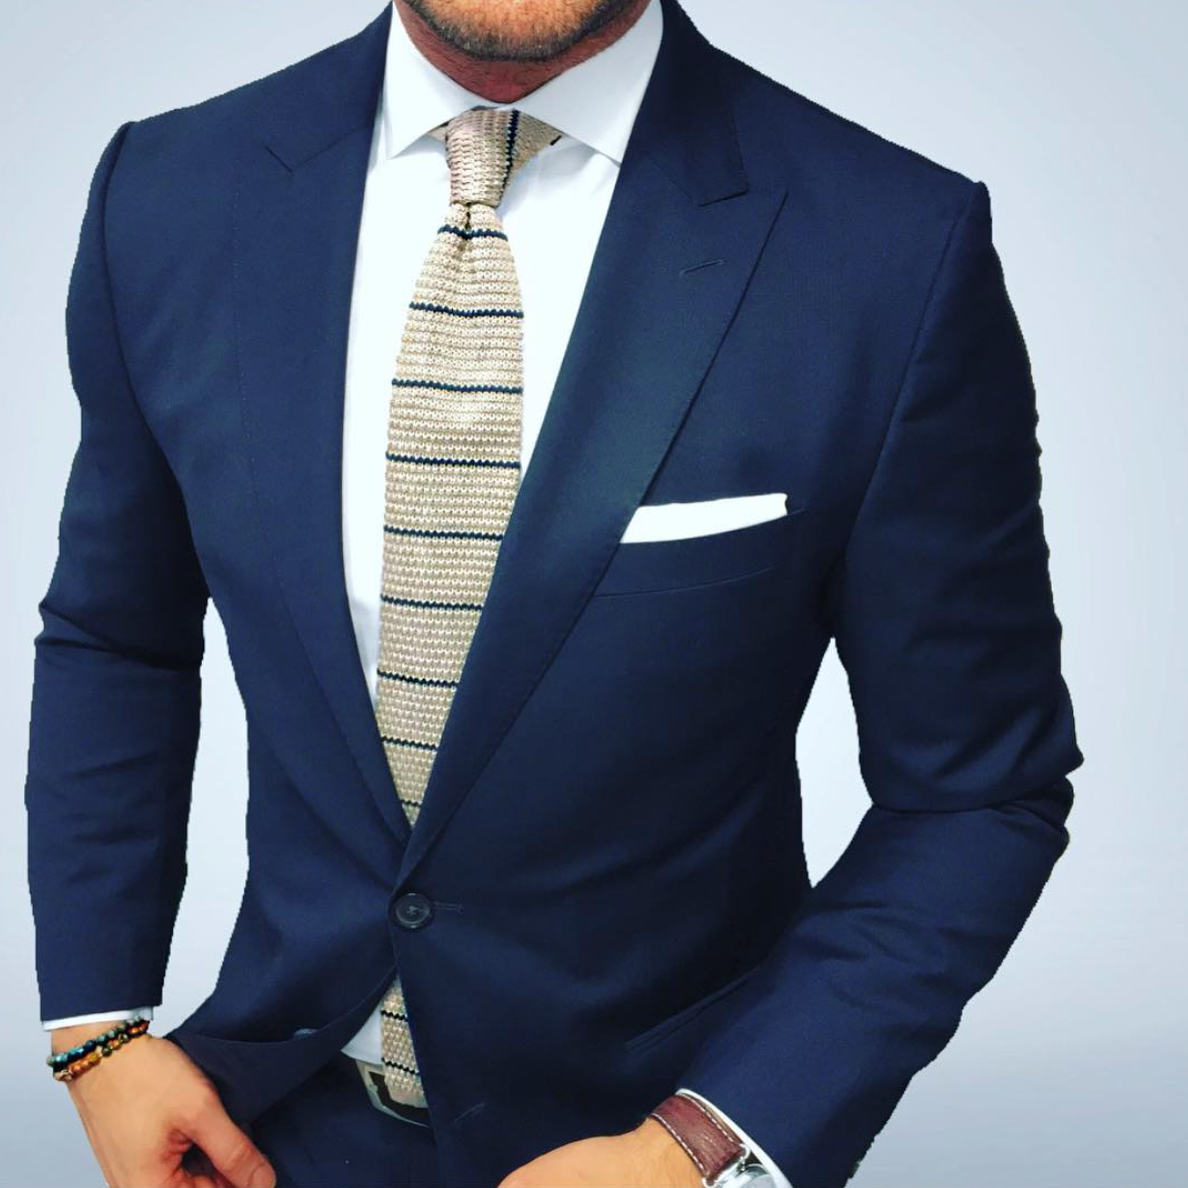 Cotton Knit Tie in Gray with Navy Stripes   Knit tie ...